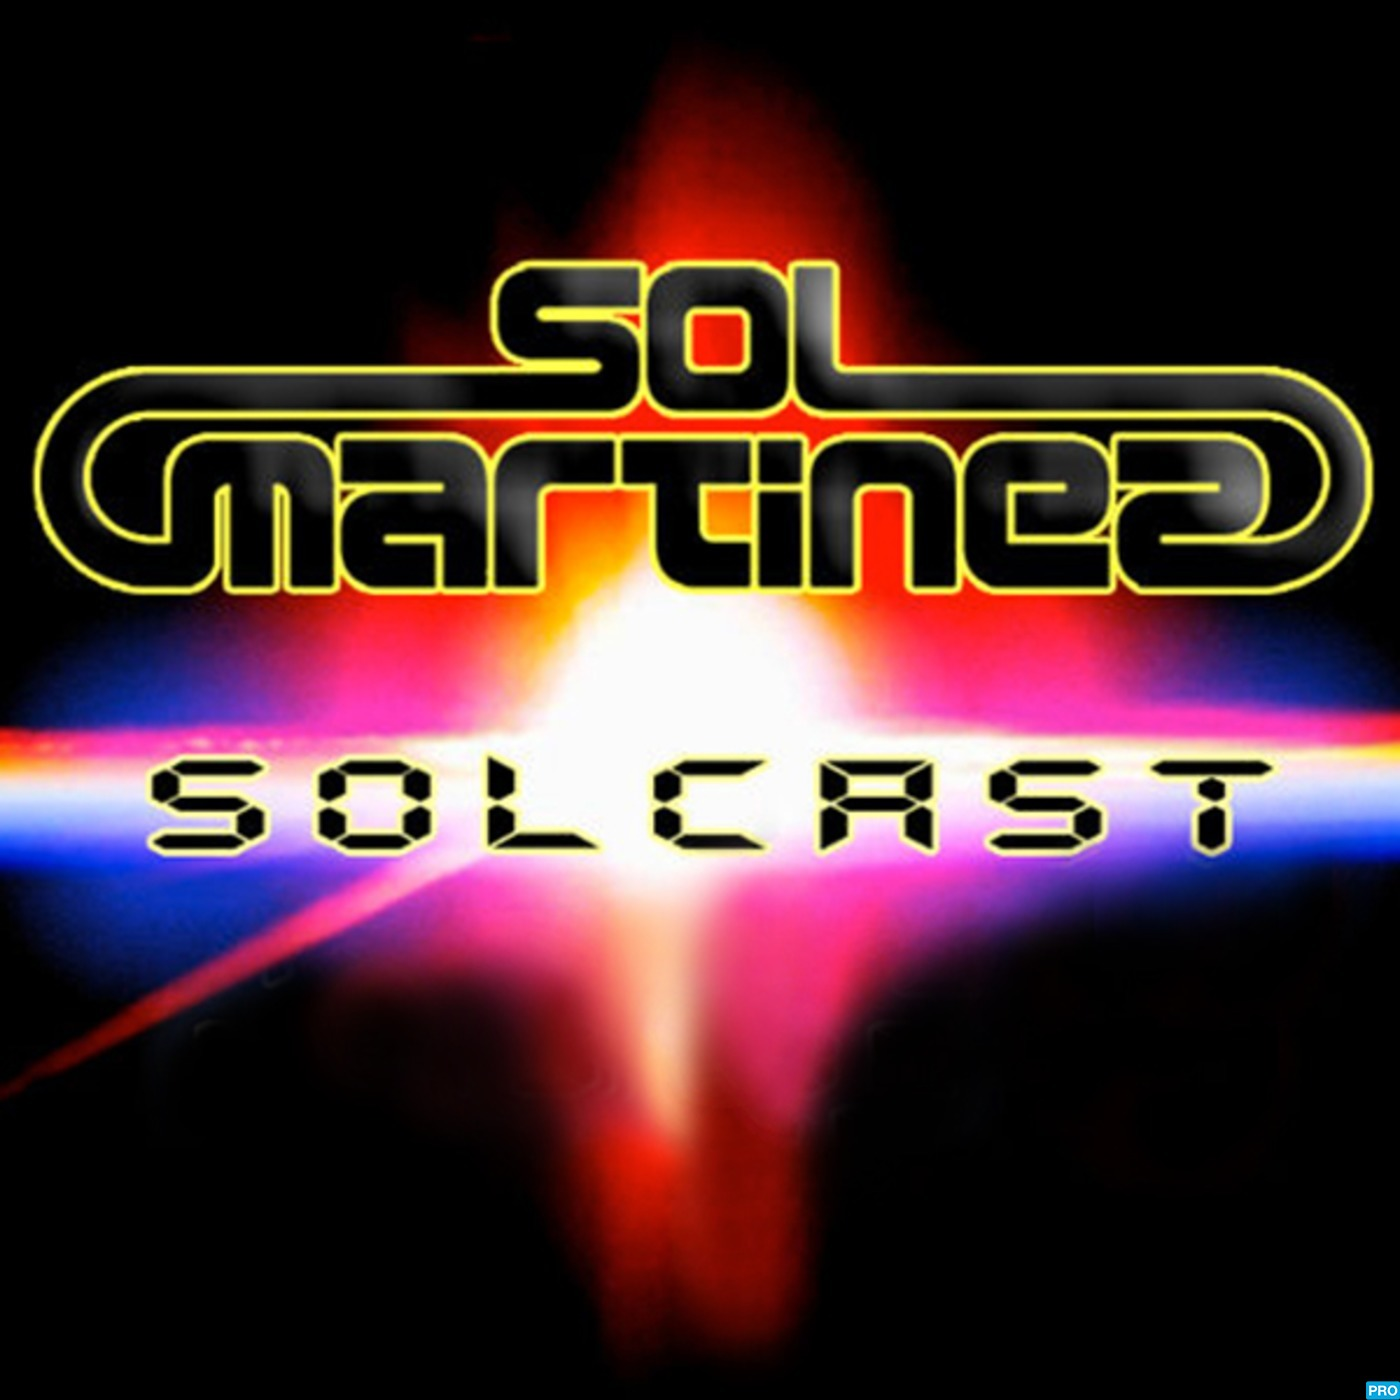 SOLCAST by Sol Martinez